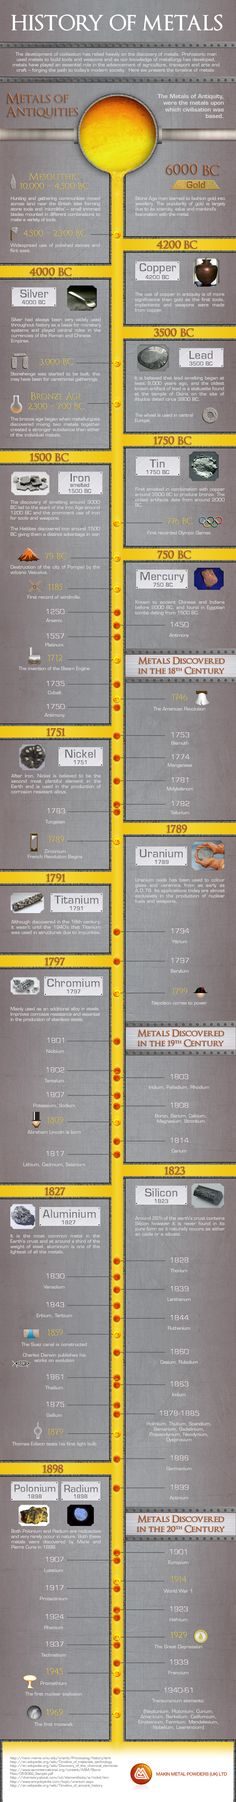 A Brief Visual History Of Metals | Zero Hedge